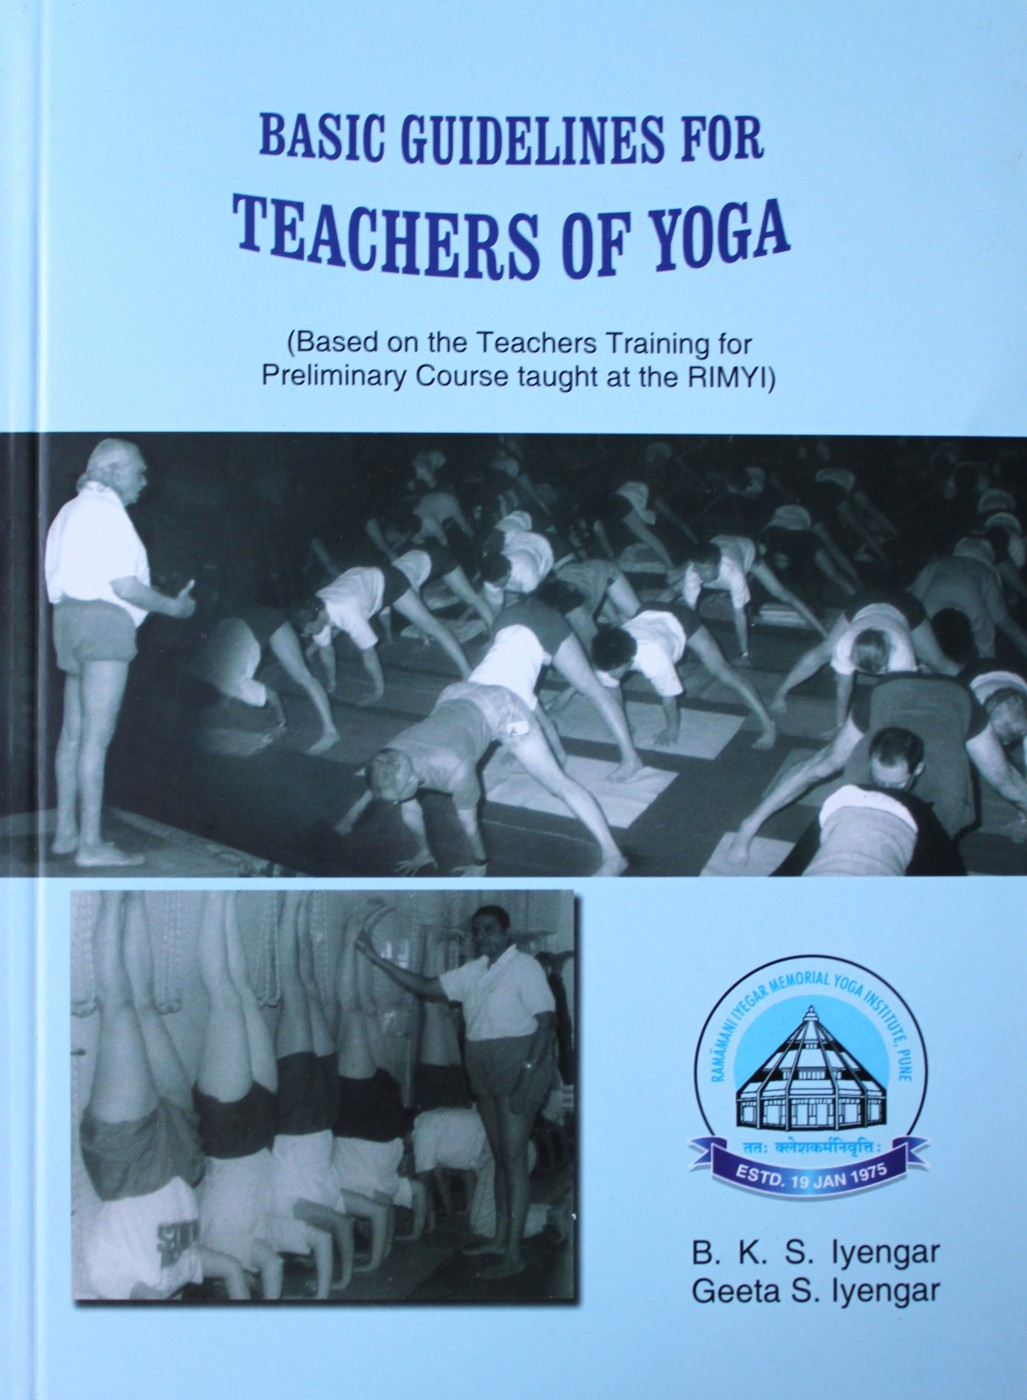 B. K. S. Iyengar, Geeta S. Iyengar Basic Guidelines for Teachers of Yoga